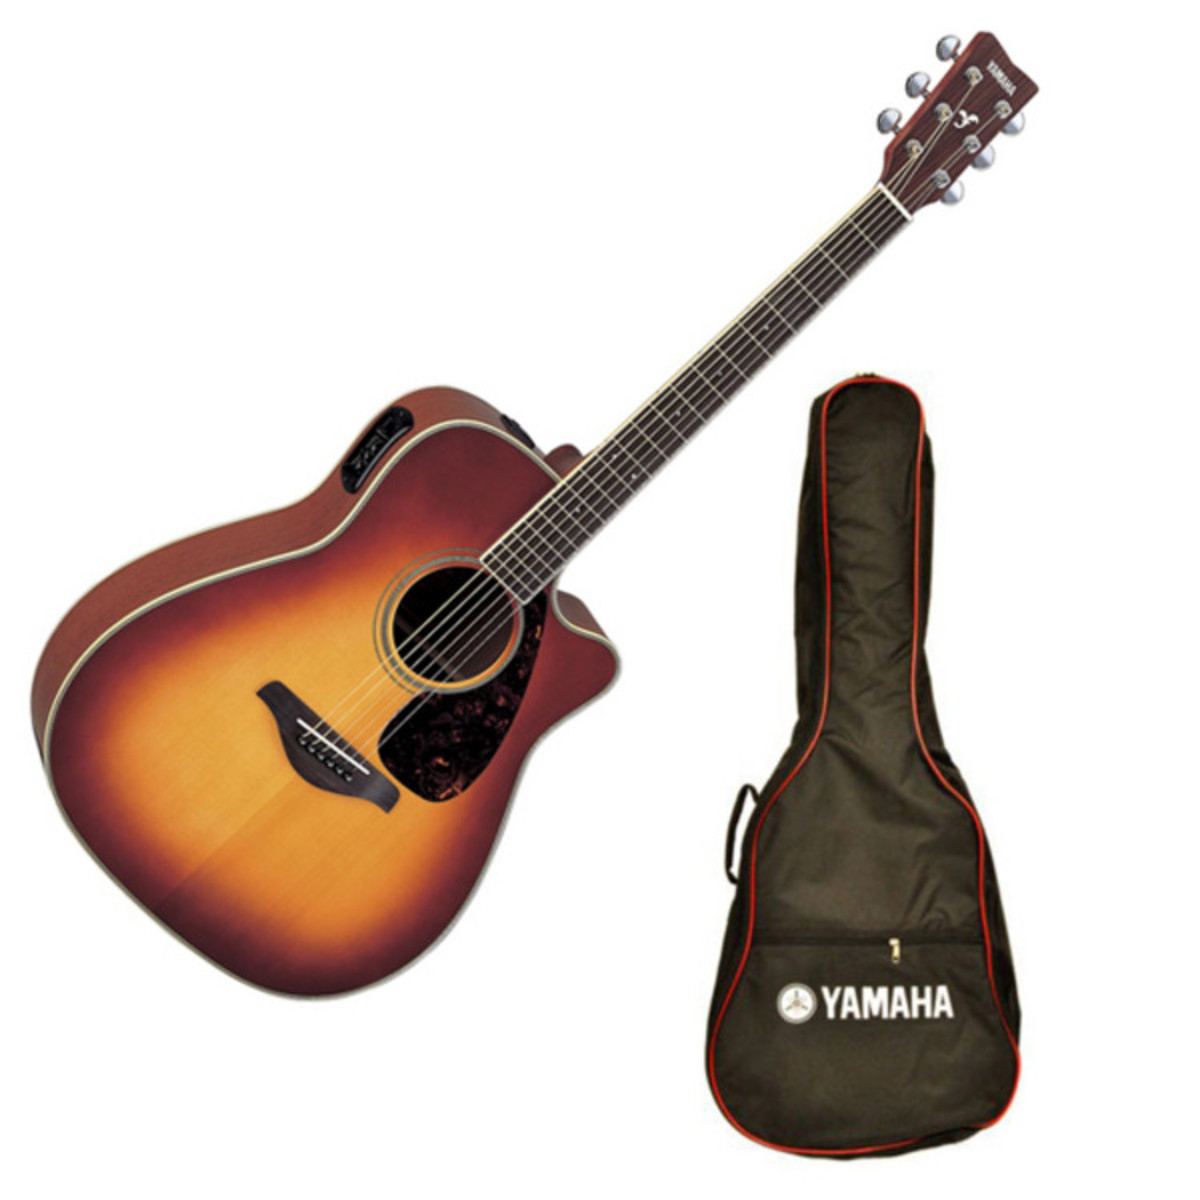 Yamaha fgx720sca guitare electro acoustique sunburst for Housse guitare acoustique